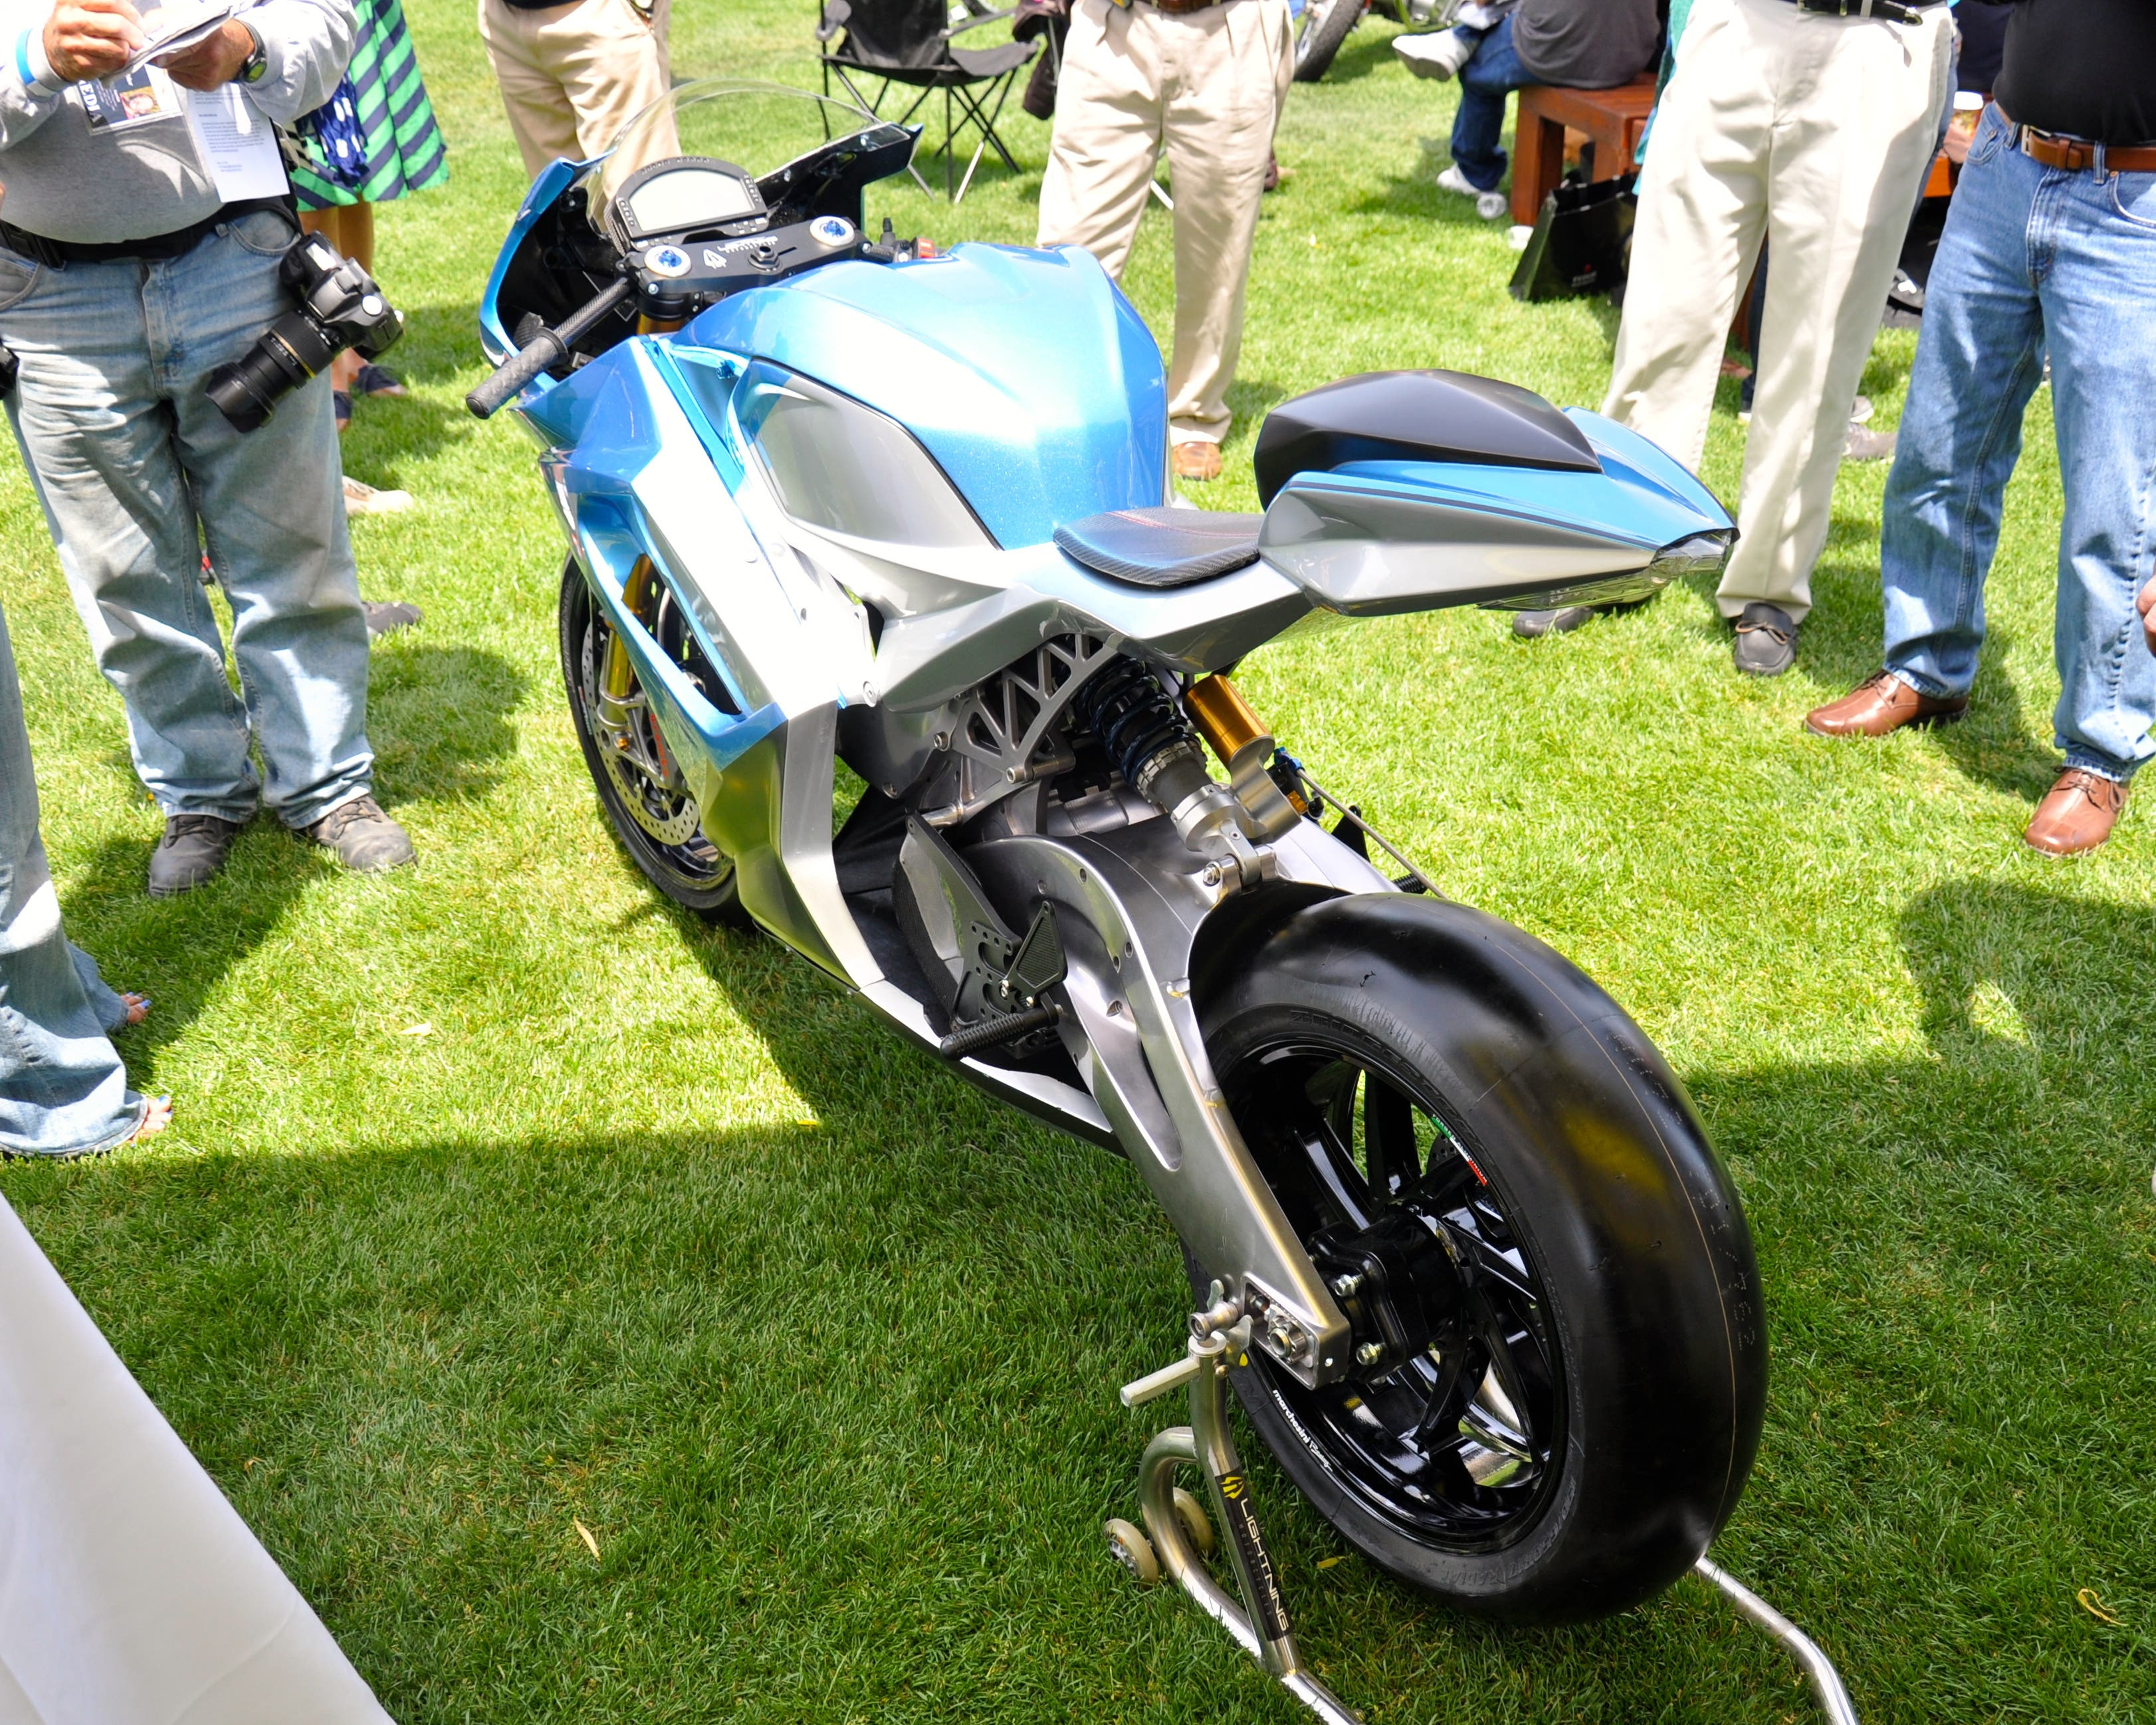 "Lightning Motorcycle LS218 Strike ""width ="" 3244 ""height ="" 2595 ""srcset ="" https://cleantechnica.com/files/2019/01/Lightning-Motorcycle-LS218-Strike-6.jpg 3244w, https: // cleantechnica .com / files / 2019/01 / Lightning-Motorcycle-LS218-Strike-6-270x216.jpg 270w, https://cleantechnica.com/files/2019/01/Lightning-Motorcycle-LS218-Strike-6-768x614. jpg 768w, https://cleantechnica.com/files/2019/01/Lightning-Motorcycle-LS218-Strike-6-570x456.jpg 570w ""tailles ="" (largeur maximale: 3244px) 100vw, 3244px"